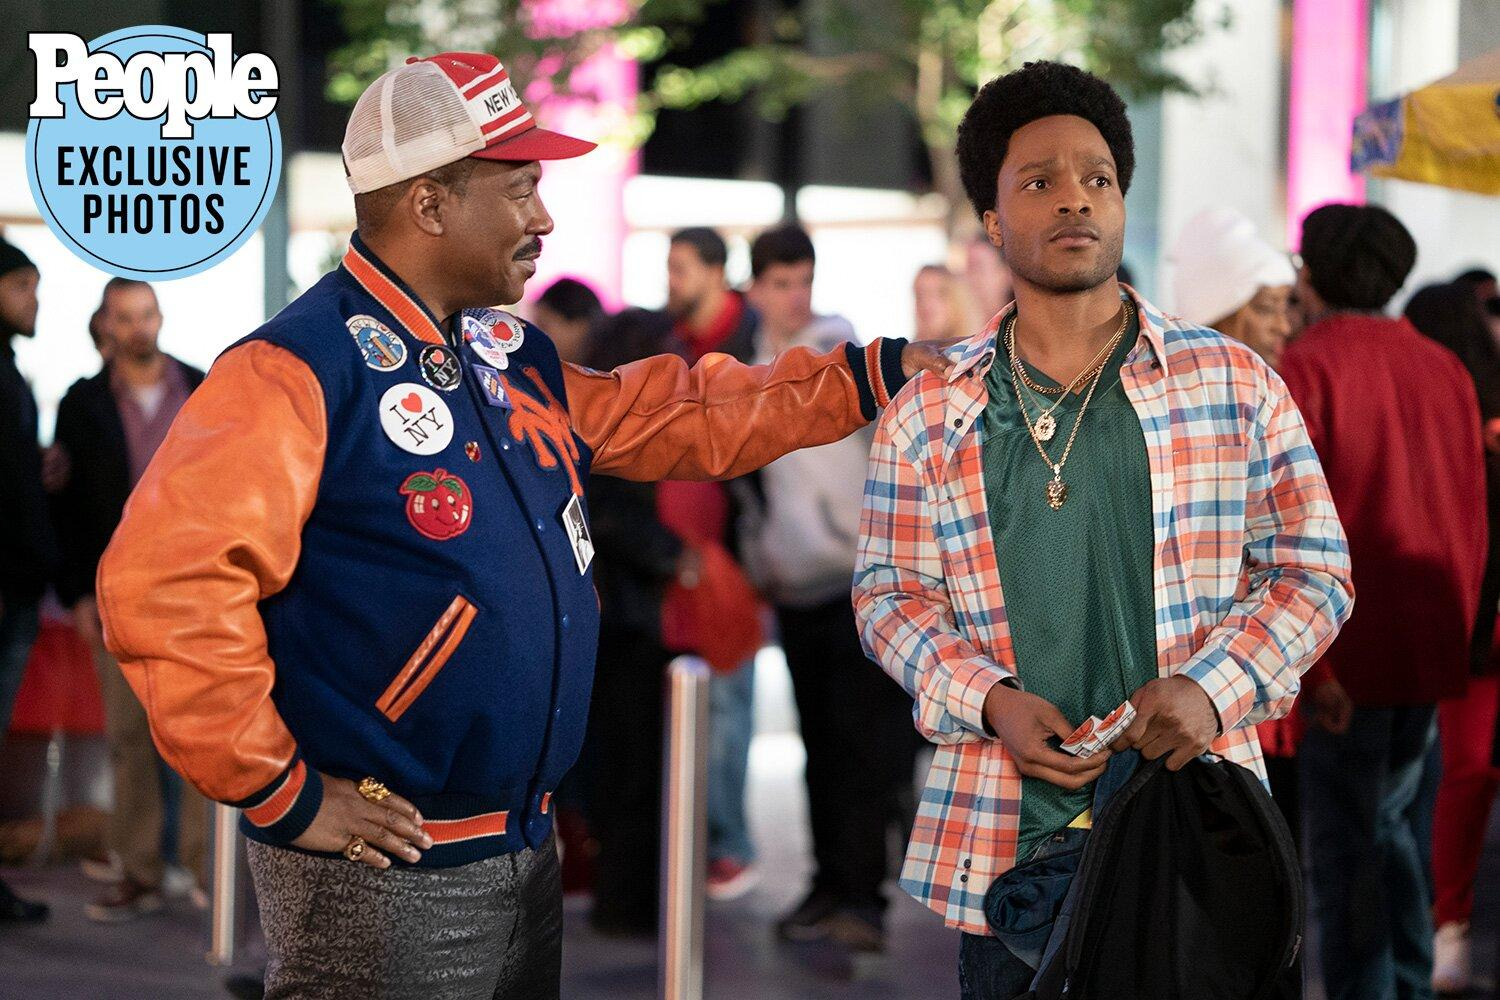 Coming 2 America S Jermaine Fowler Was Born When The Original Came Out It S Truly An Honor